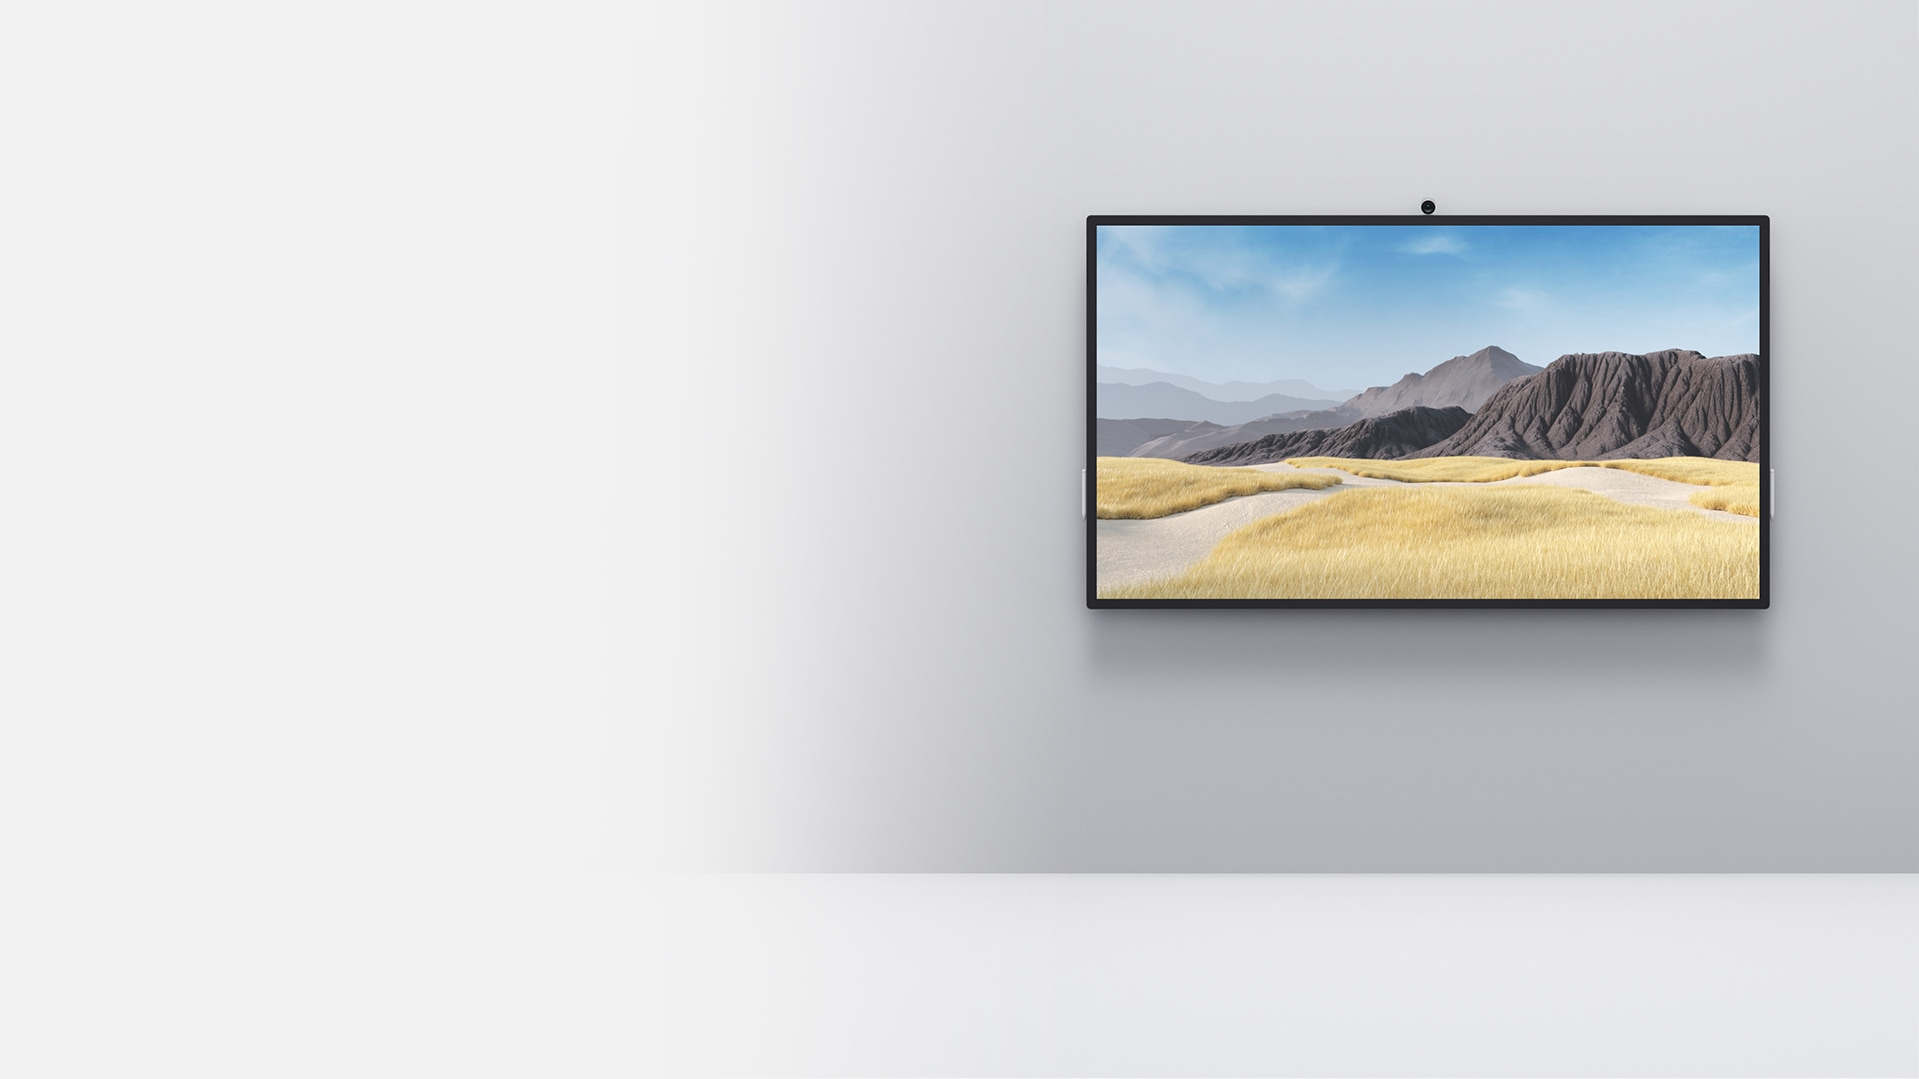 A Surface Hub 2S in the 85-inch size is shown mounted on a wall with two stools placed on each side of the device